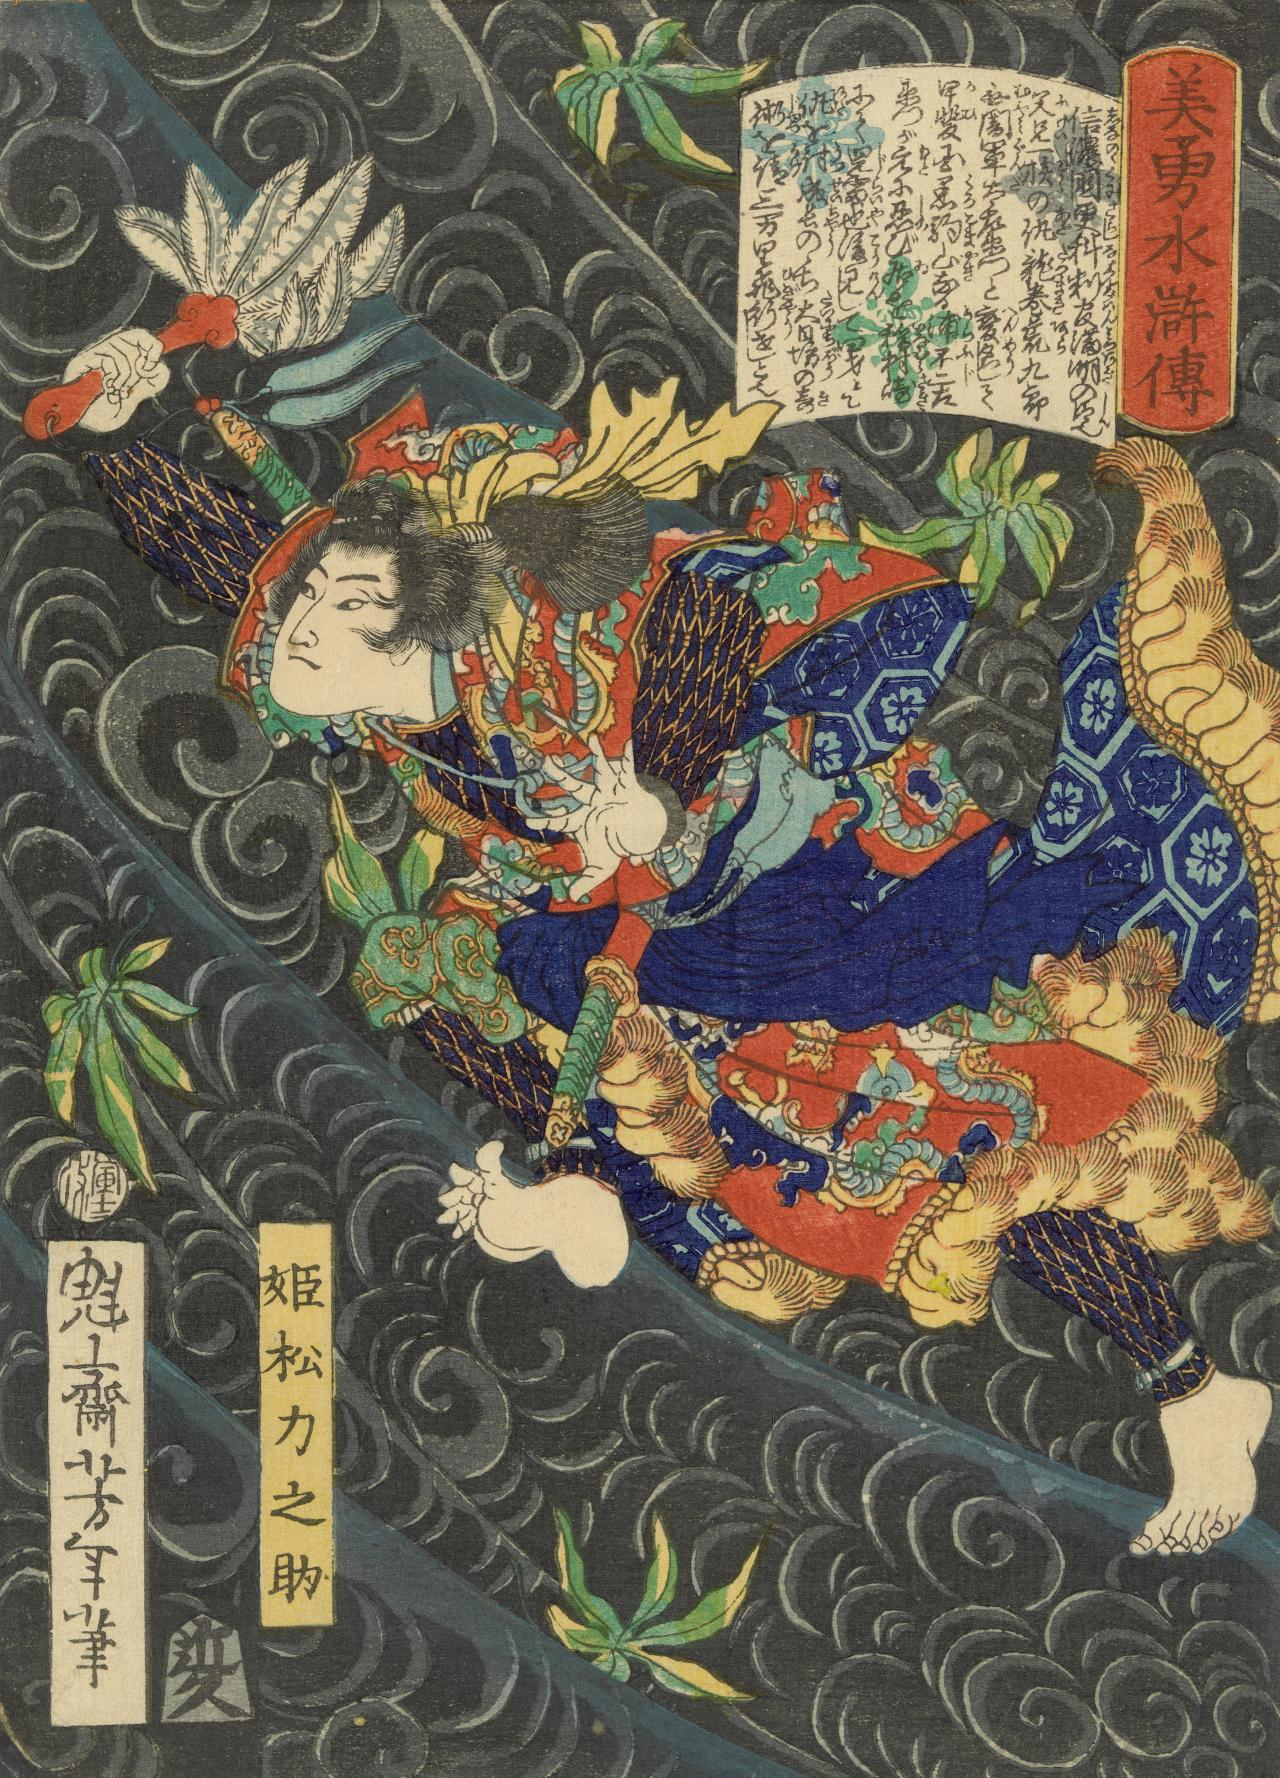 The Ghost of Yaehatahime (Yaehatahime no bōrei) and Akamatsu Jūtamaru Takanori